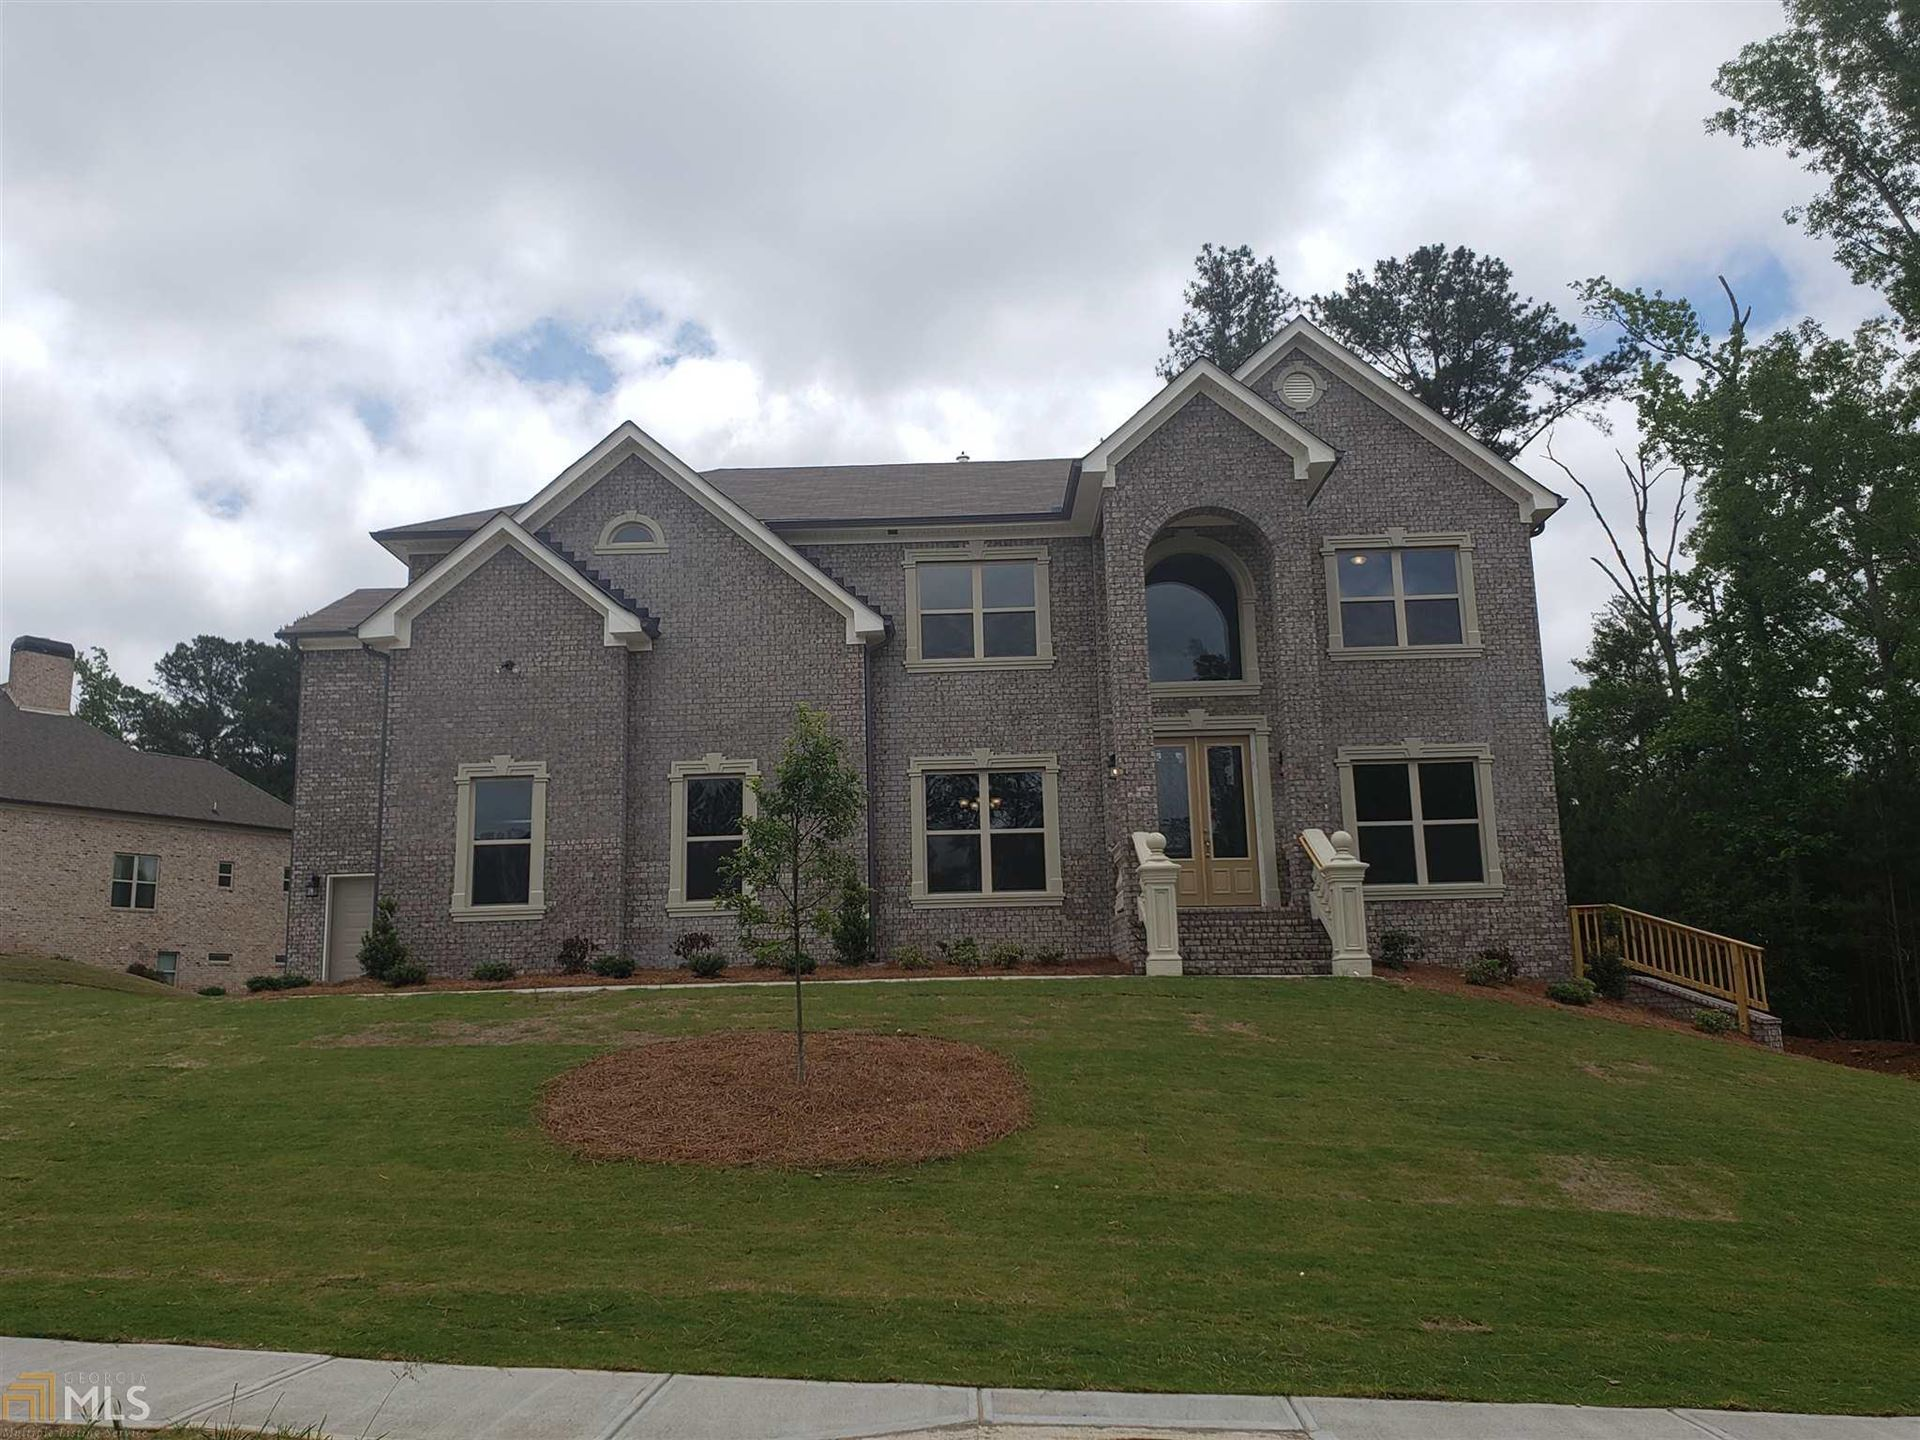 1857 Christopher Dr, Conyers, GA 30094 - #: 8788084